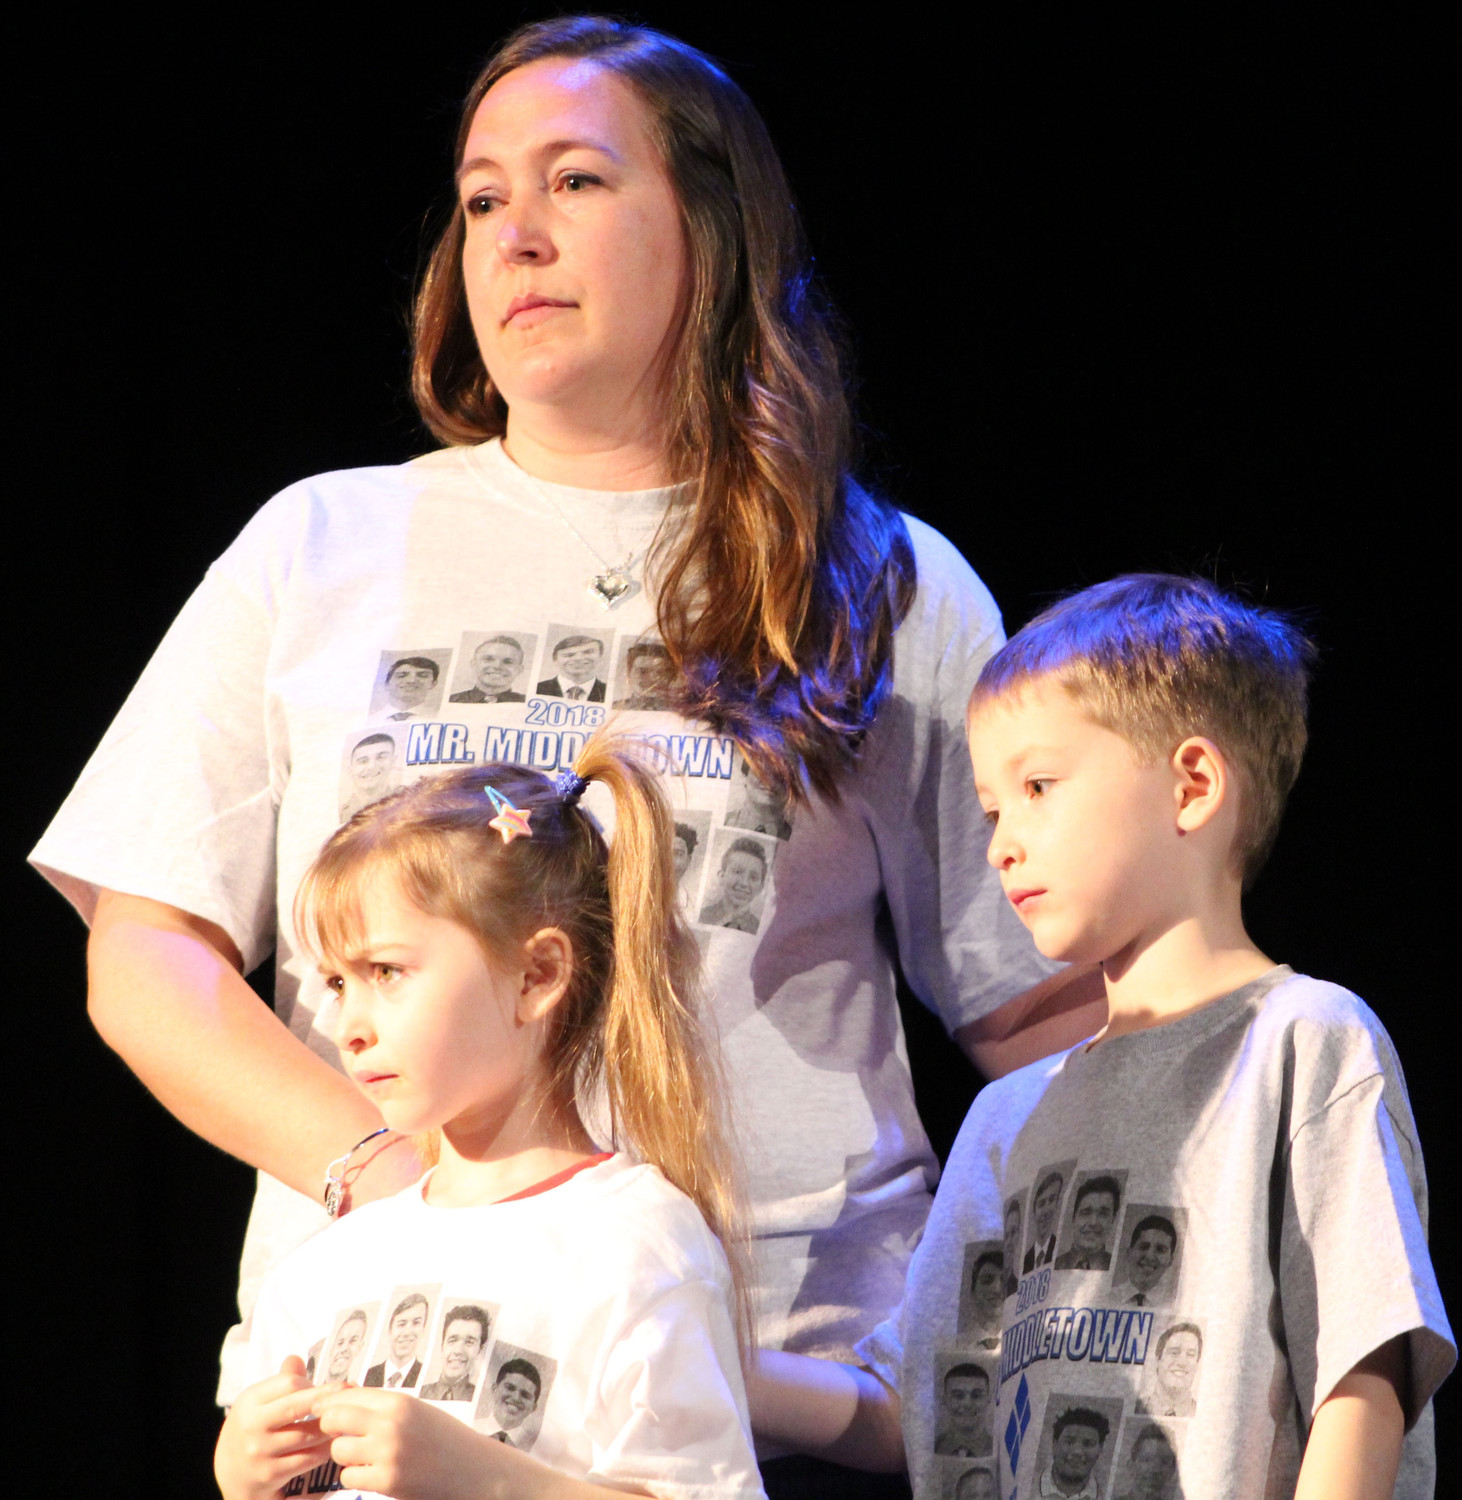 Nicole Gora stands with her children Zayla and Ayden – this year's Four Diamond family for MAHS' Mini-THON. Ayden was diagnosed with leukemia at age two in 2013.